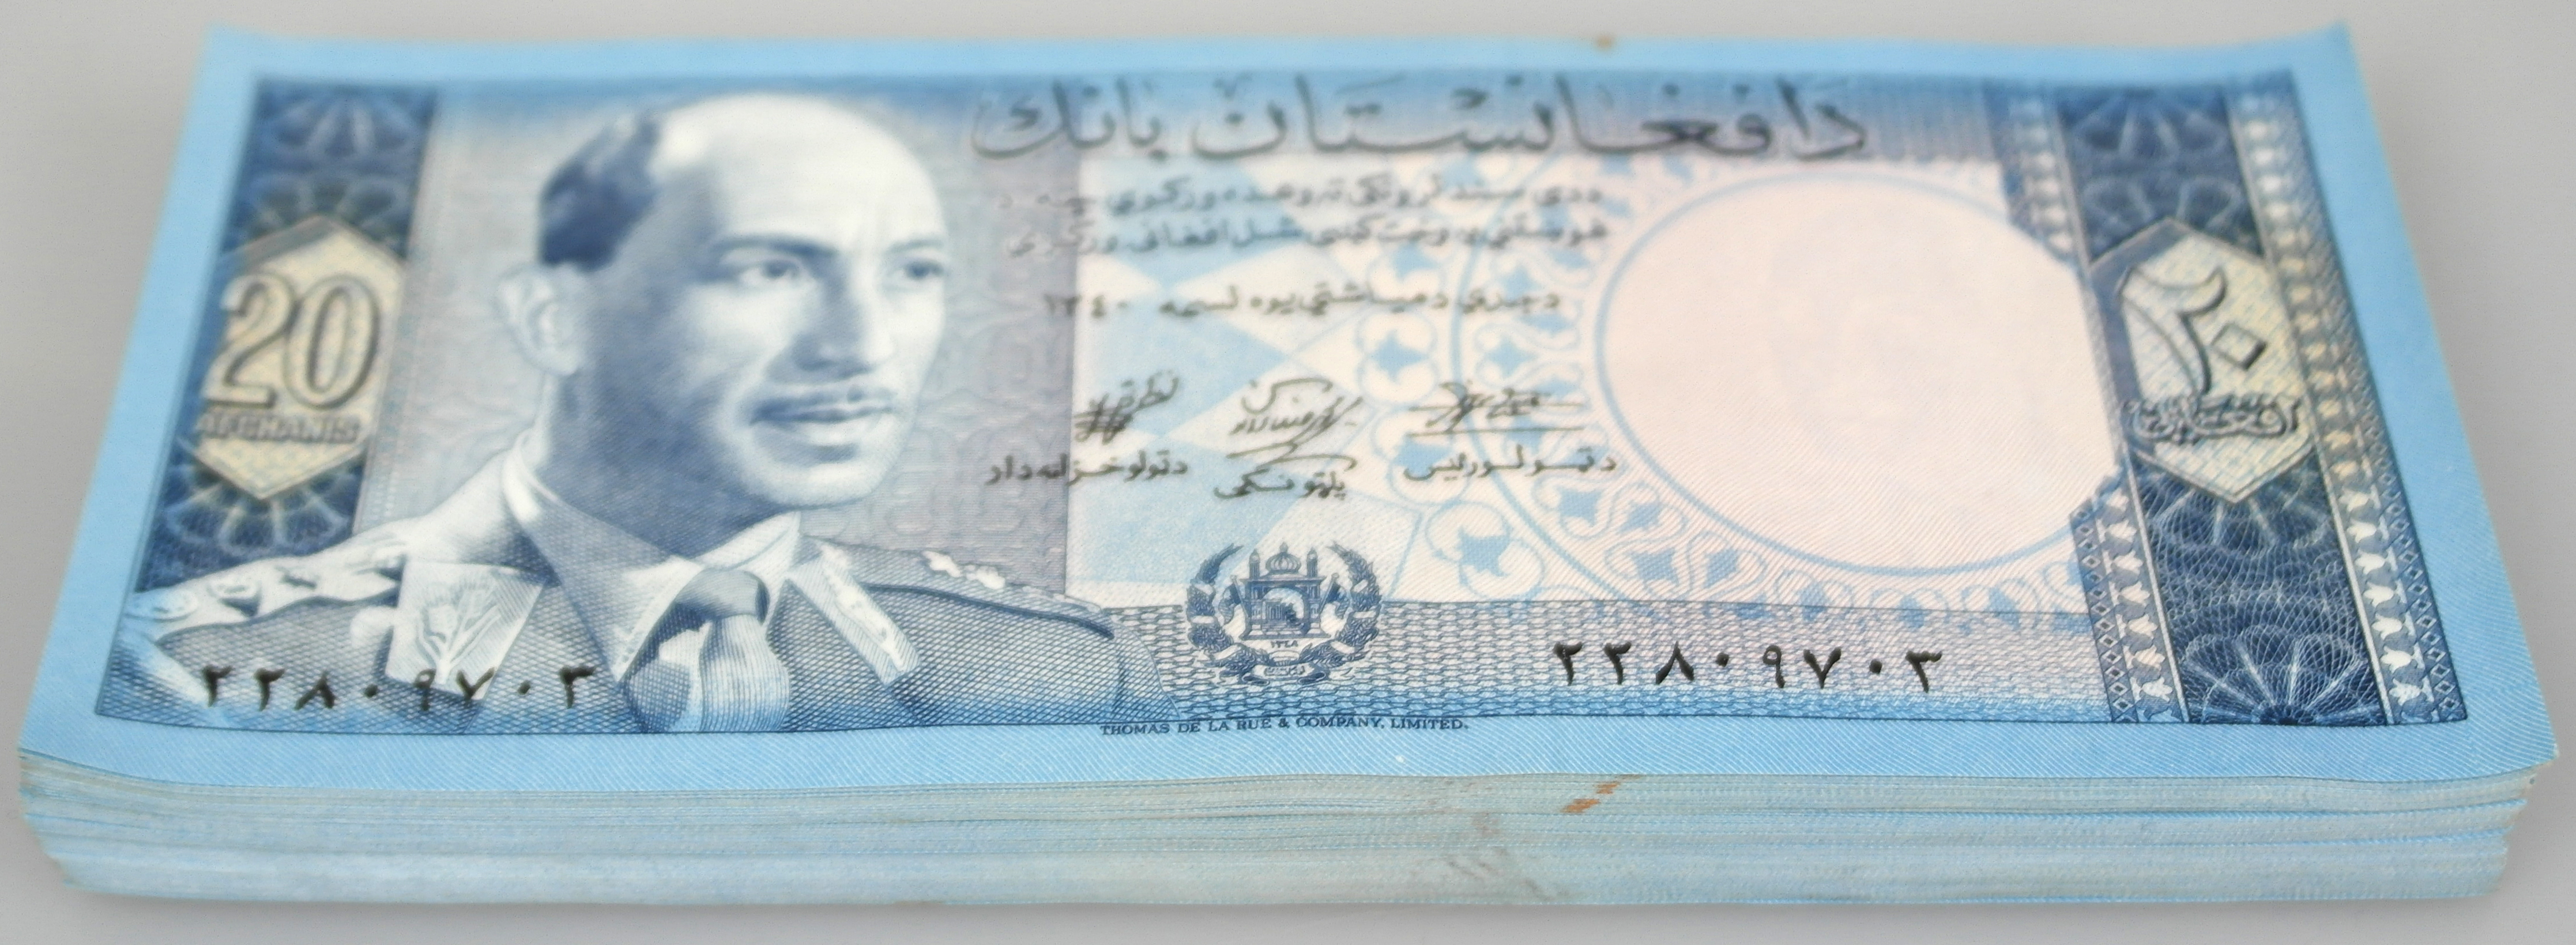 AFGHANISTAN 20 AFGHANIS 1961 P 38 AUNC About UNC